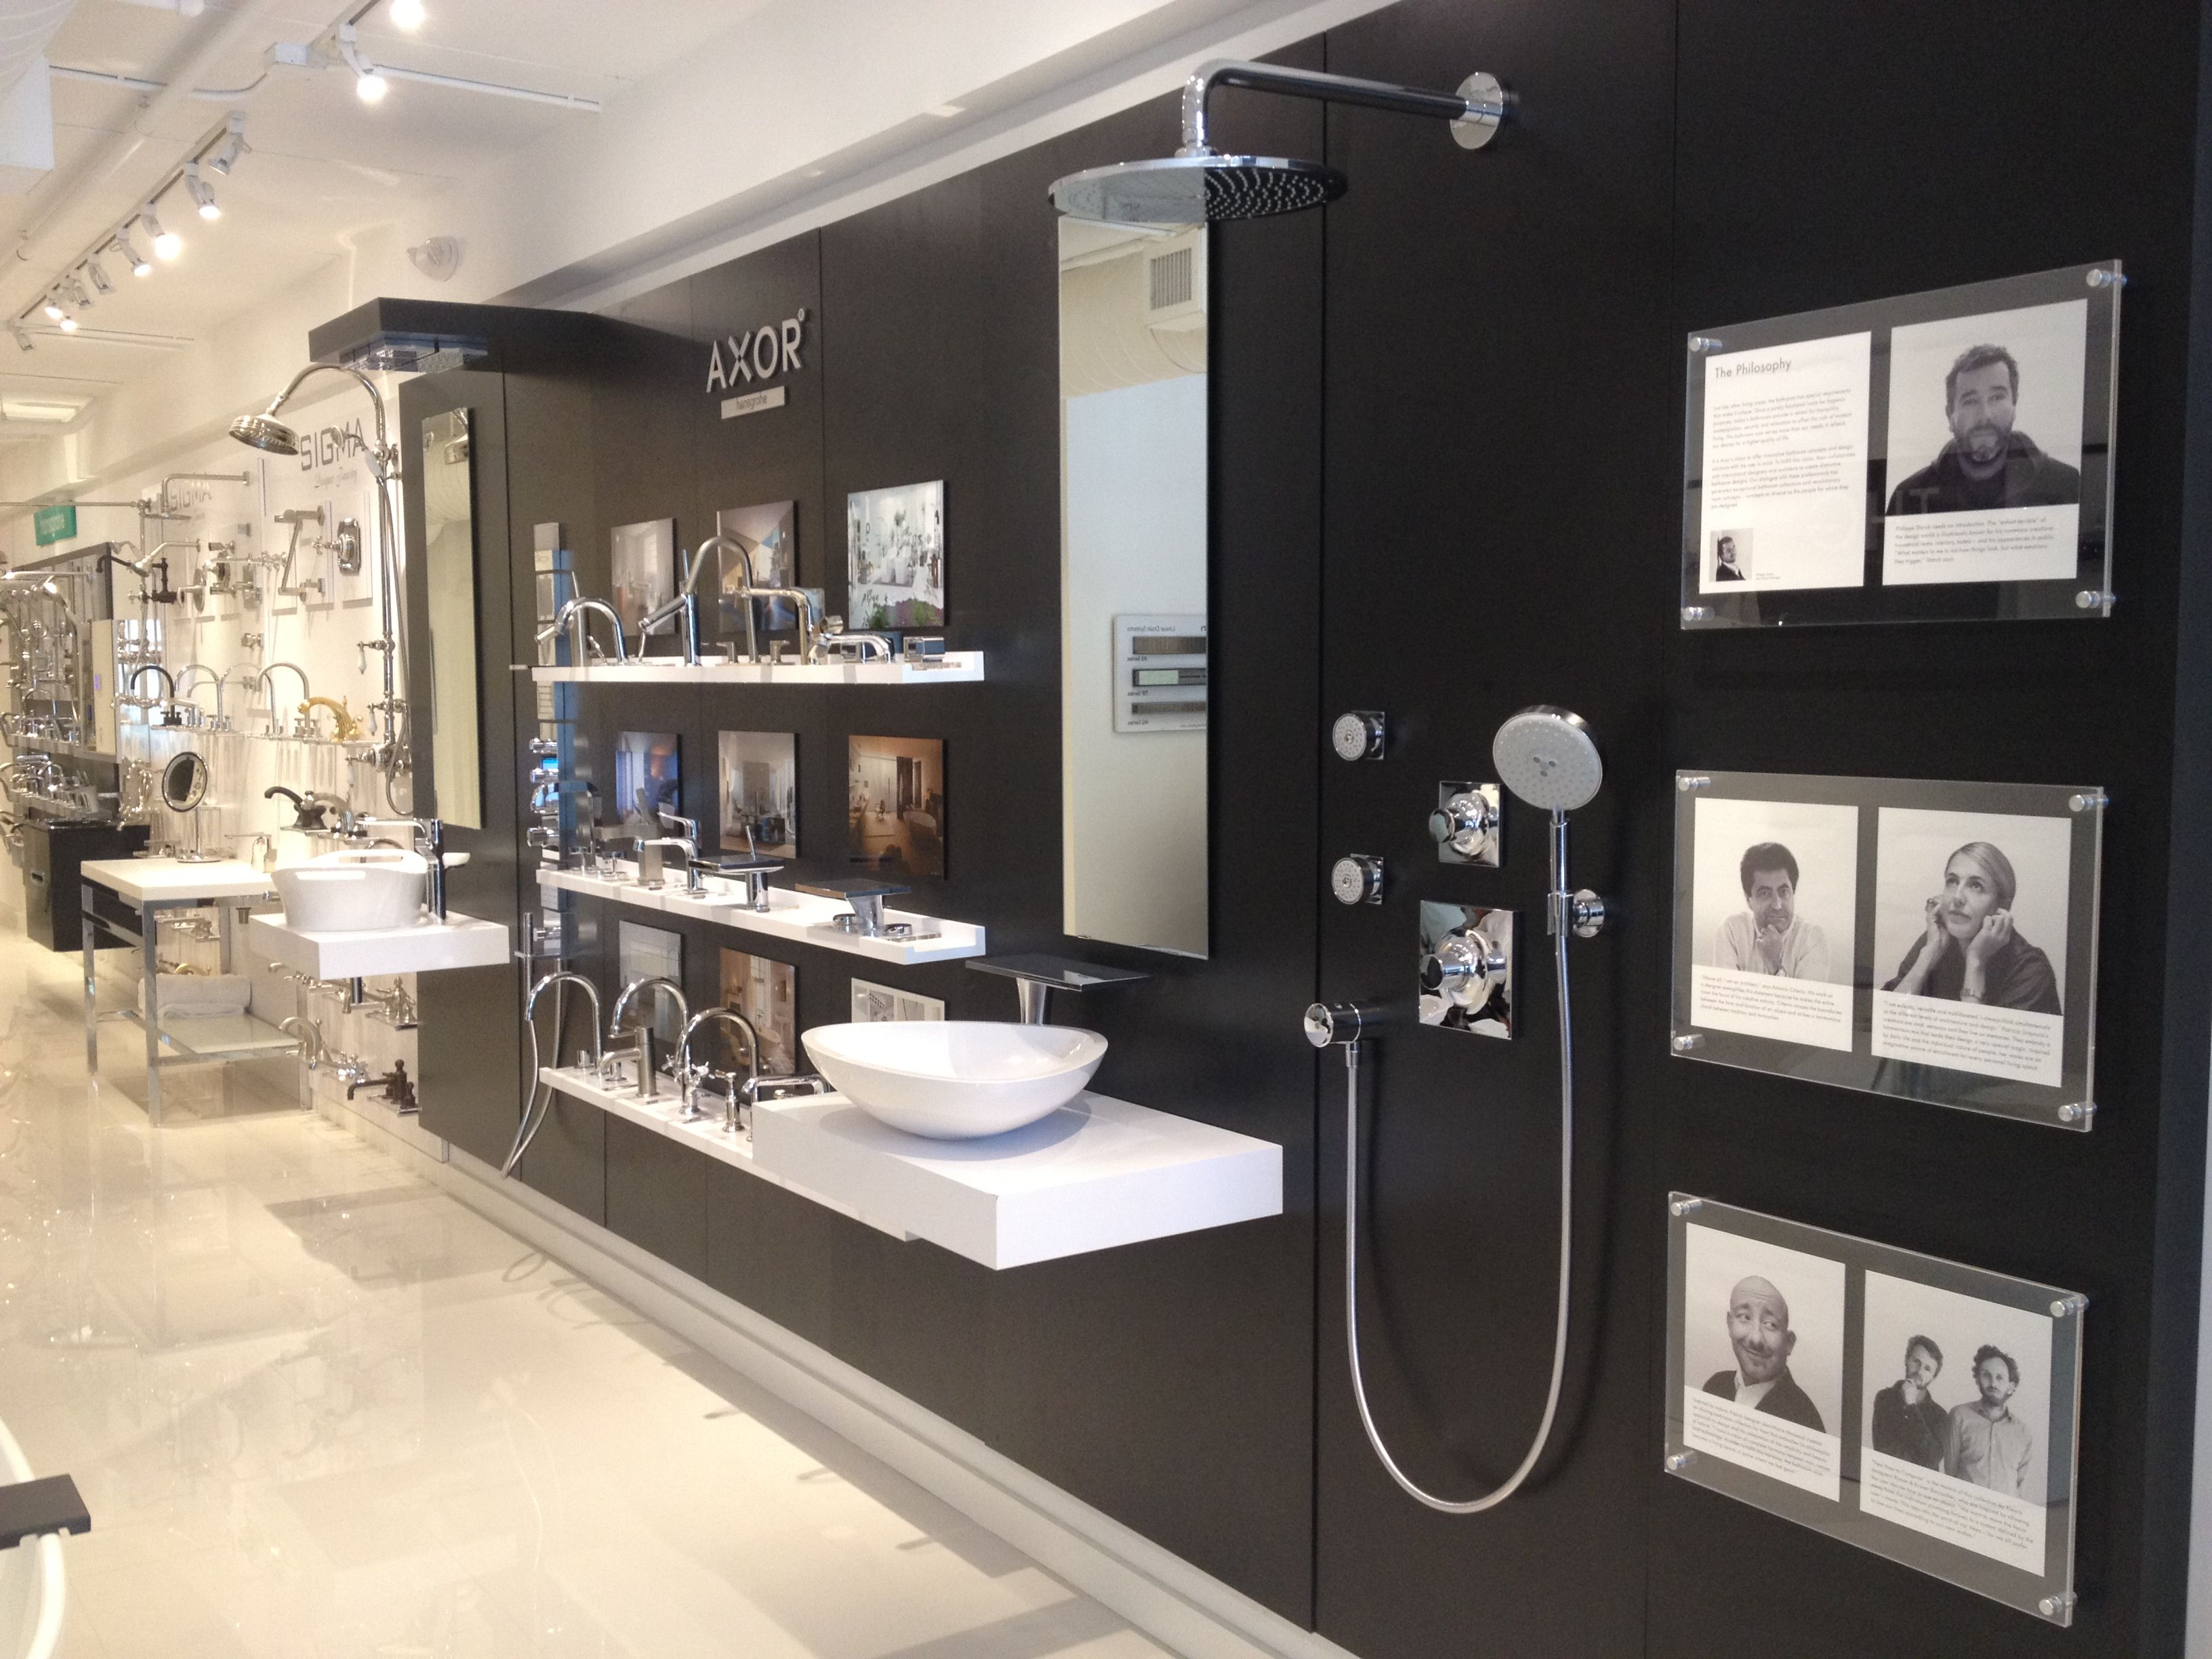 Bathroom showrooms canberra - Axor Display At Our New Showroom In The Miami Design District 3612 Ne 2nd Avenue